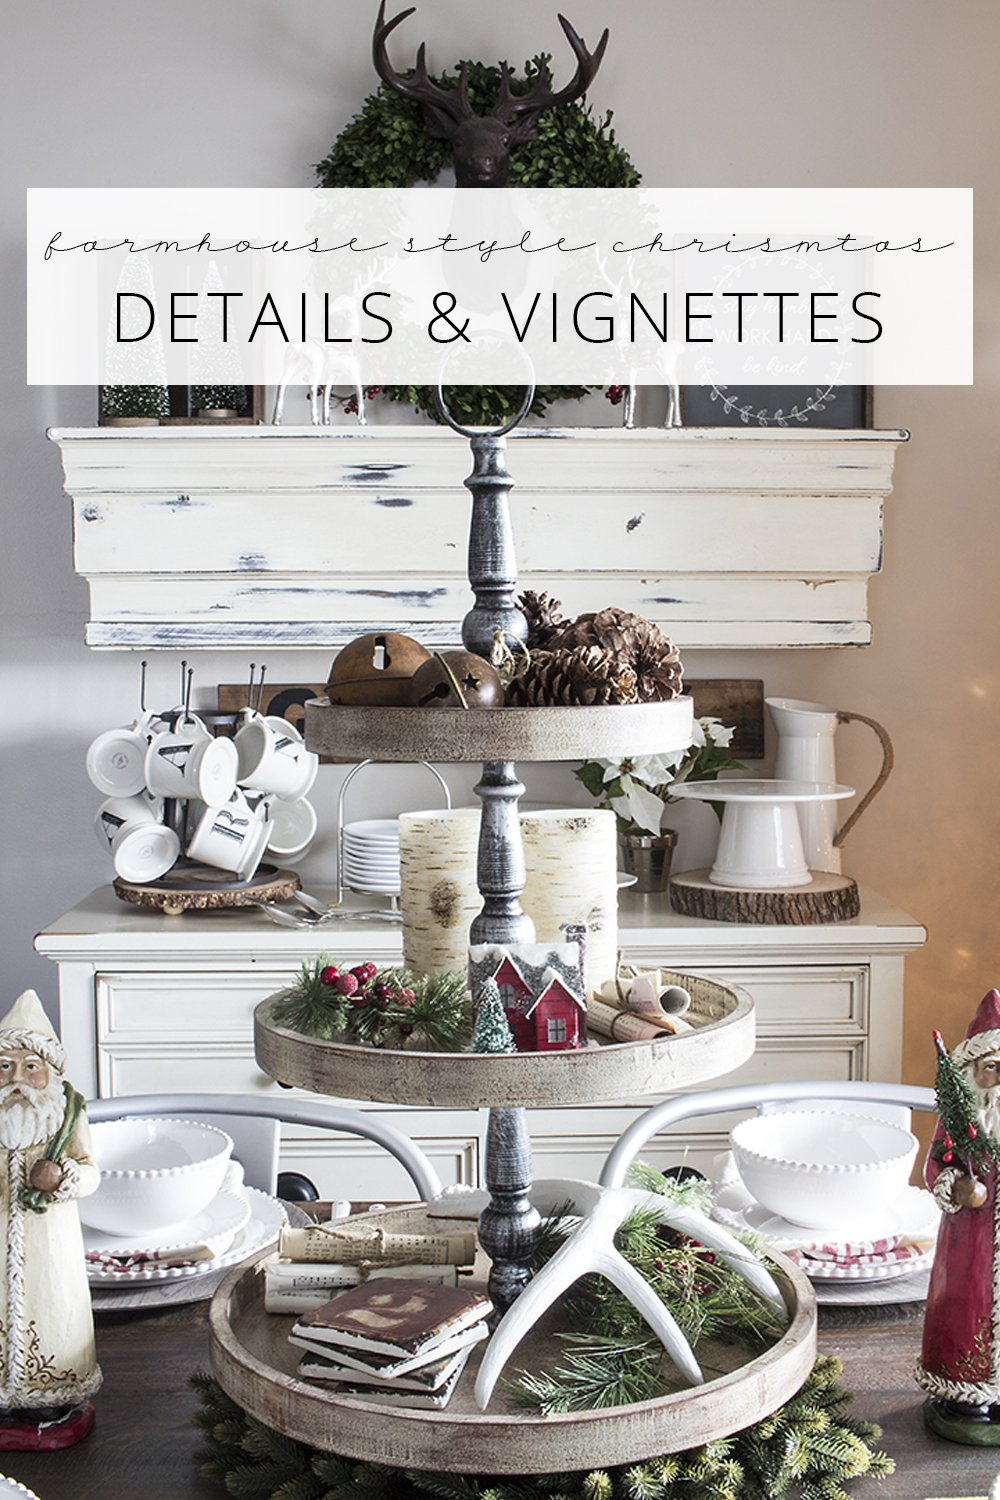 Farmhouse Style Christmas Details & Vignettes in the Living and Dining Rooms